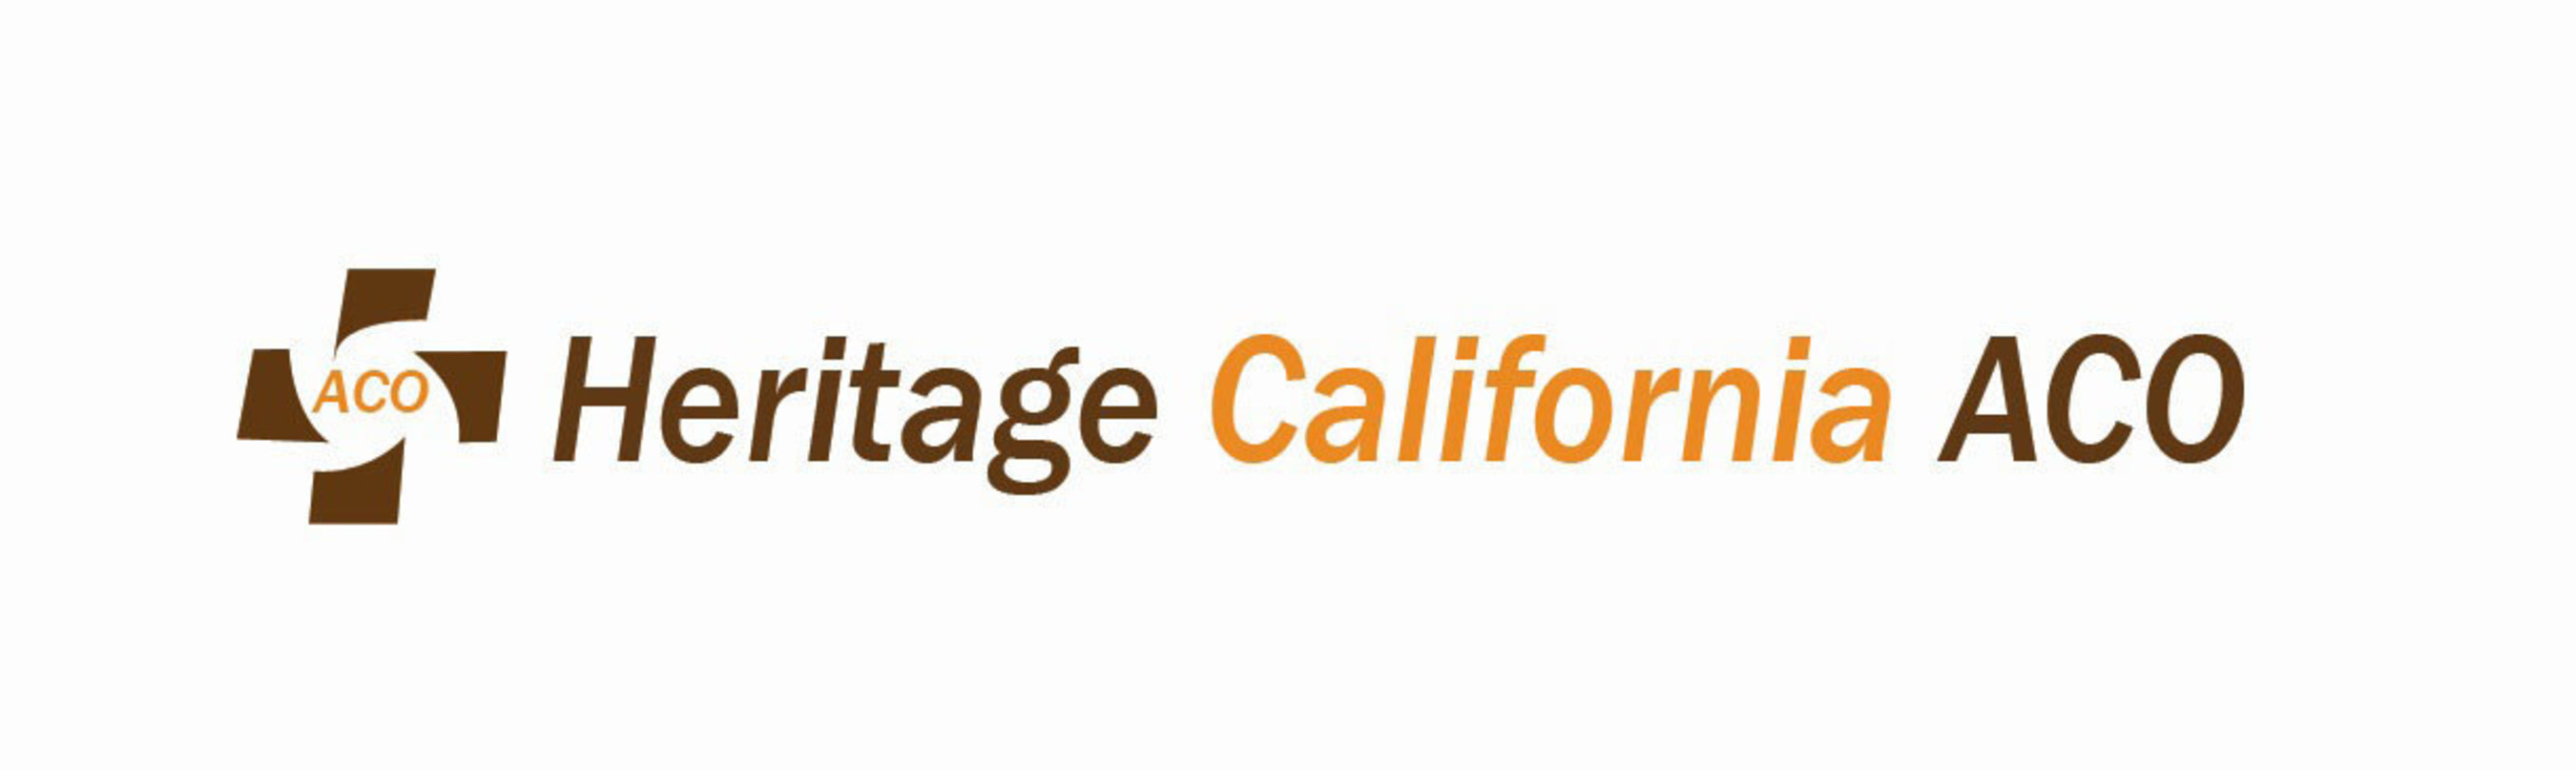 Heritage California ACO to transition to Next Gen ACO